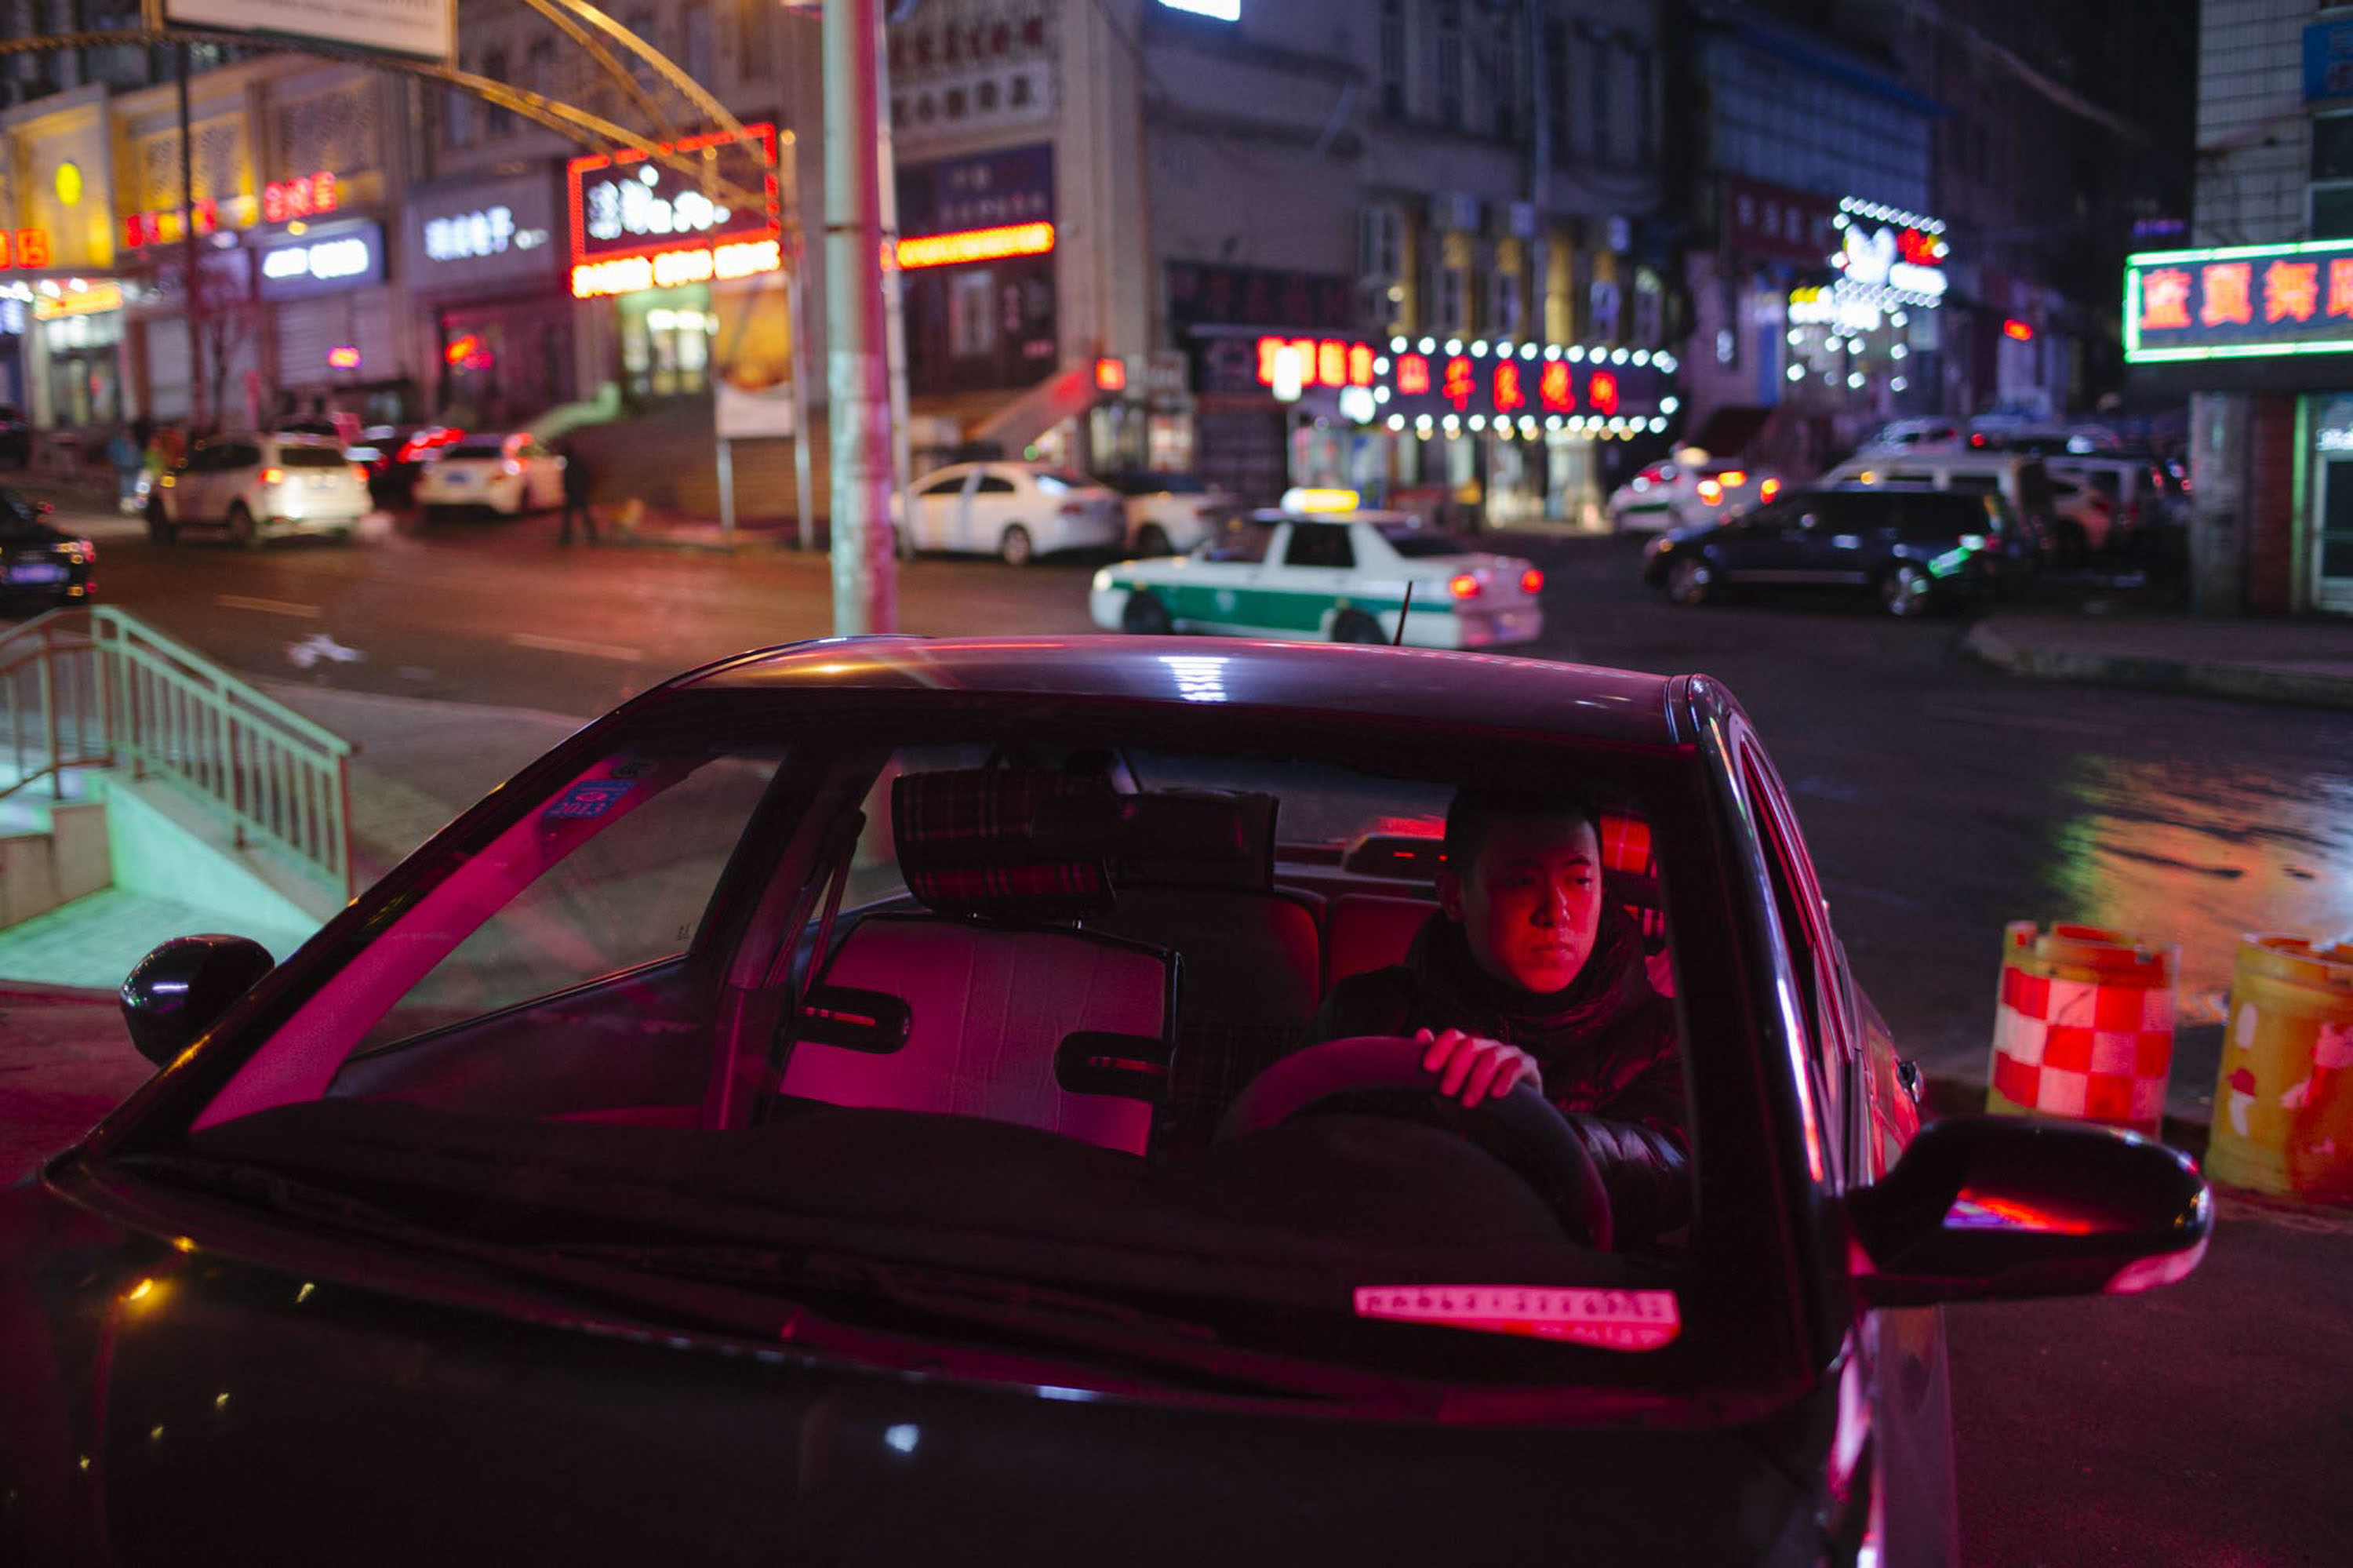 Yang Kun sits in his car at night in Shuangyashan, Jan. 17, 2016. After leaving the mining industry, the 29-year-old is managing to sustain a healthy income through a number of ventures. Zhou Pinglang/Sixth Tone